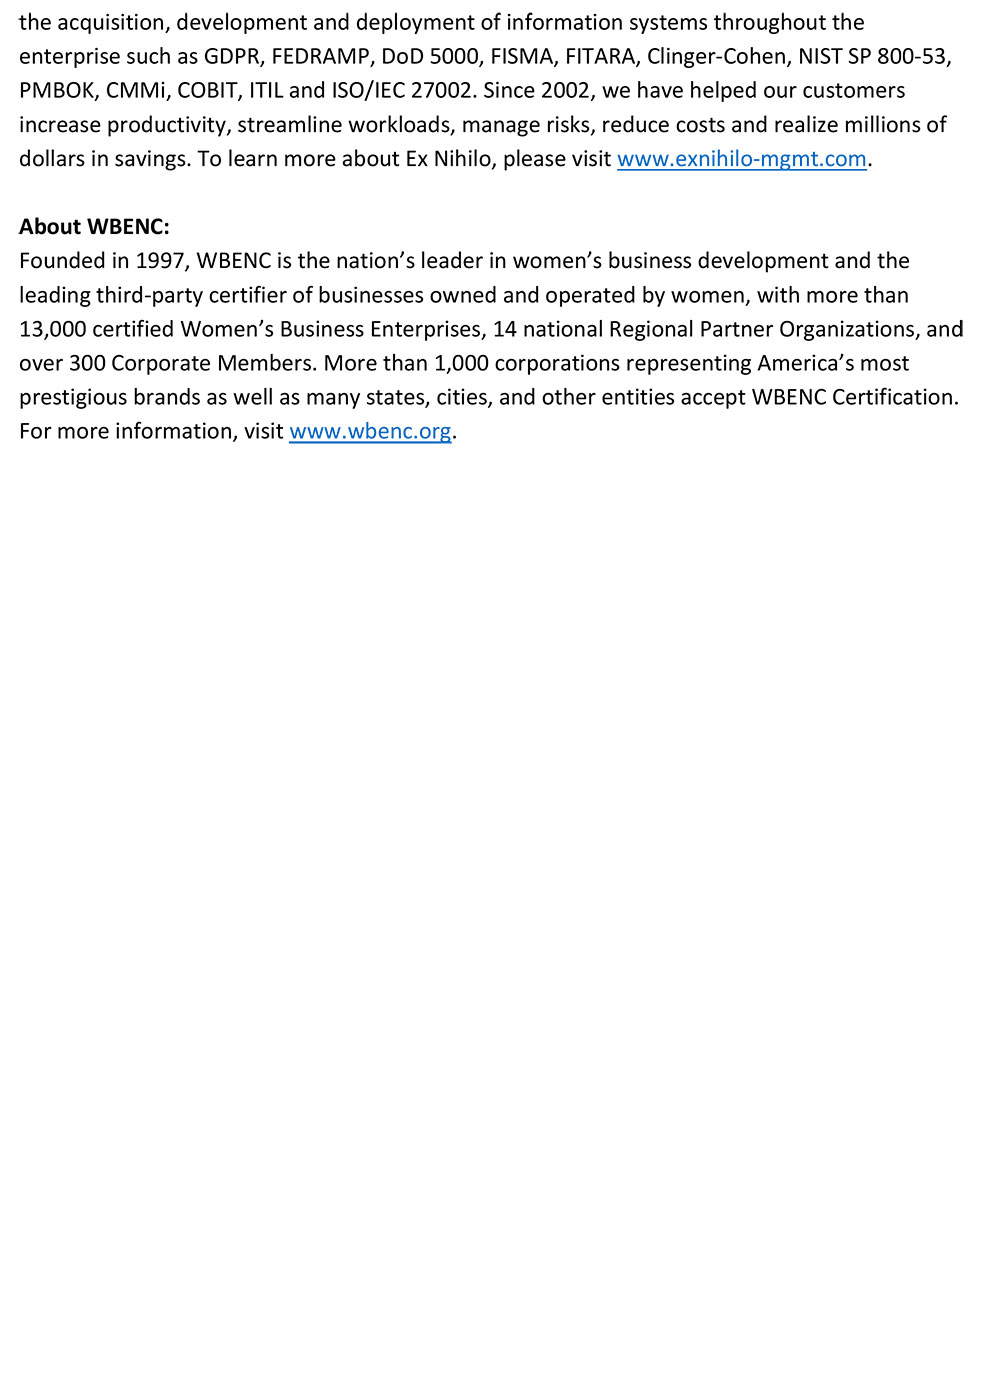 Press Release: Ex Nihilo Certified by the Women's Business Enterprise National Council (WBENC)